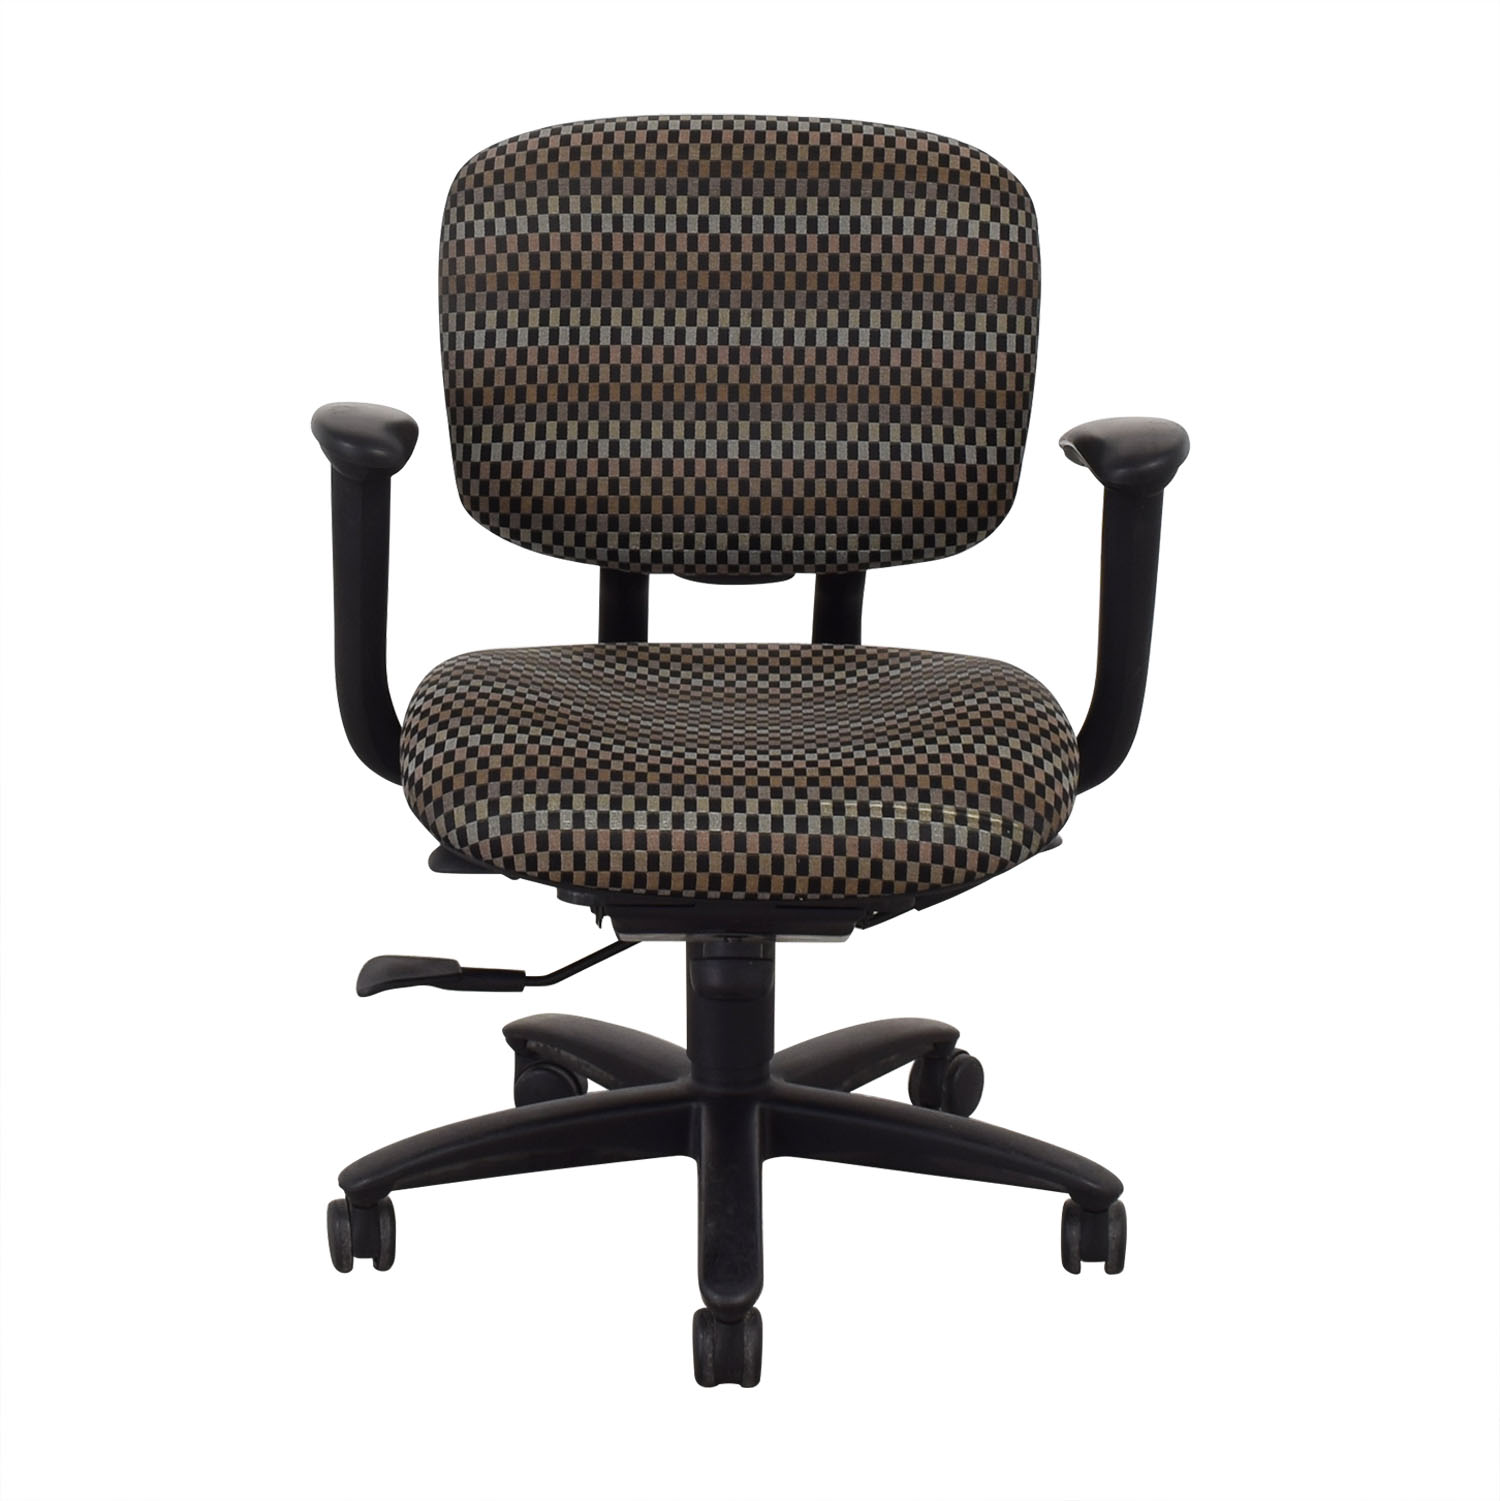 Haworth Haworth Improv Office Desk Chairs on sale